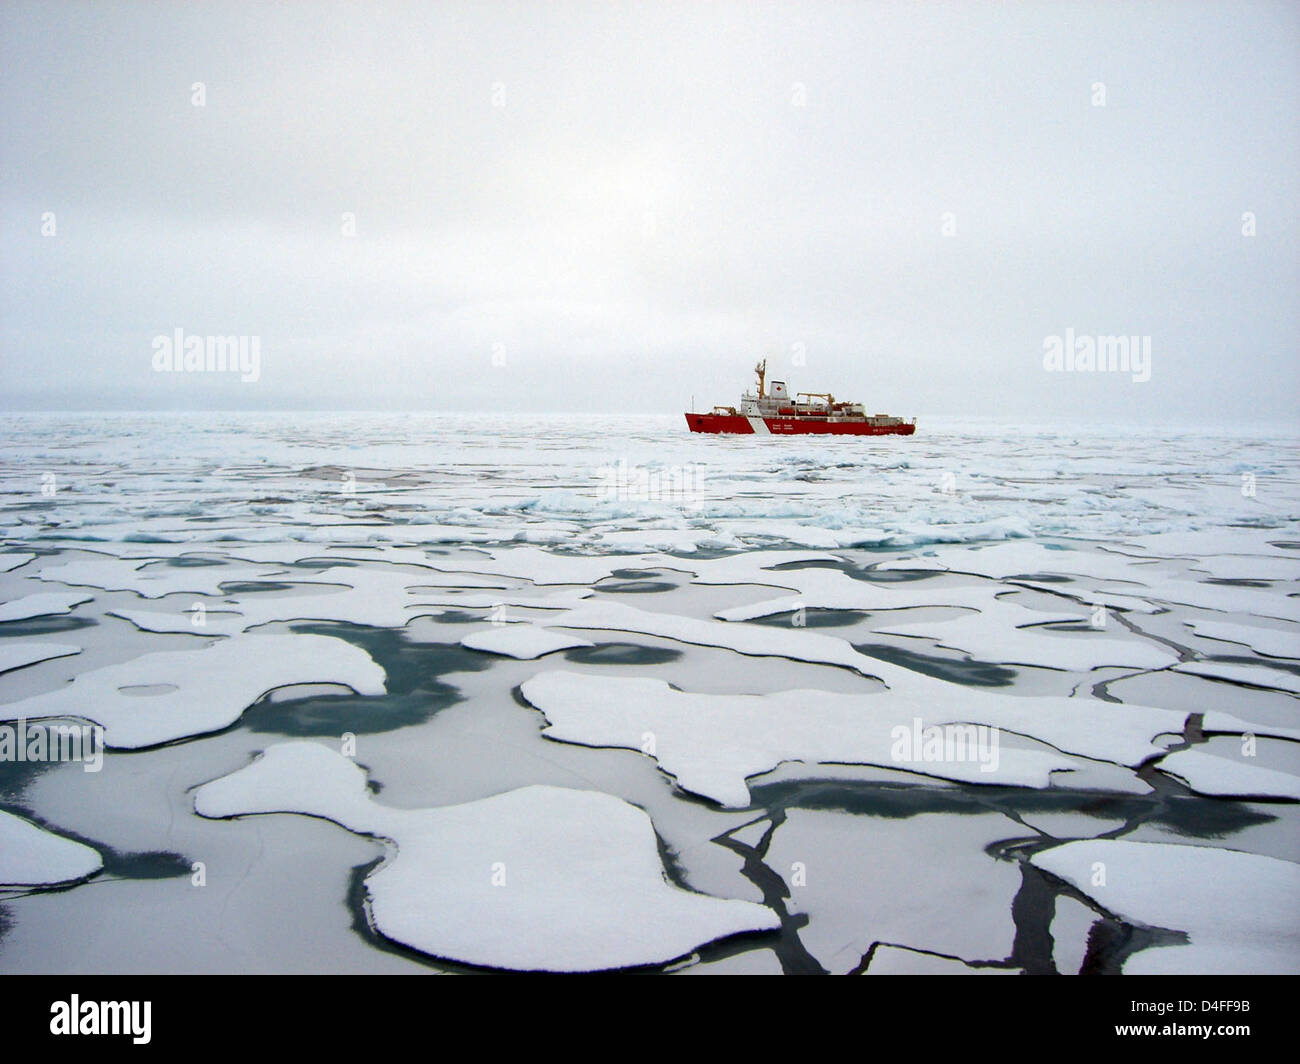 Stock Photo U S Canada Fourth Joint Mission To Map The Continental Shelf In The Arctic Ocean